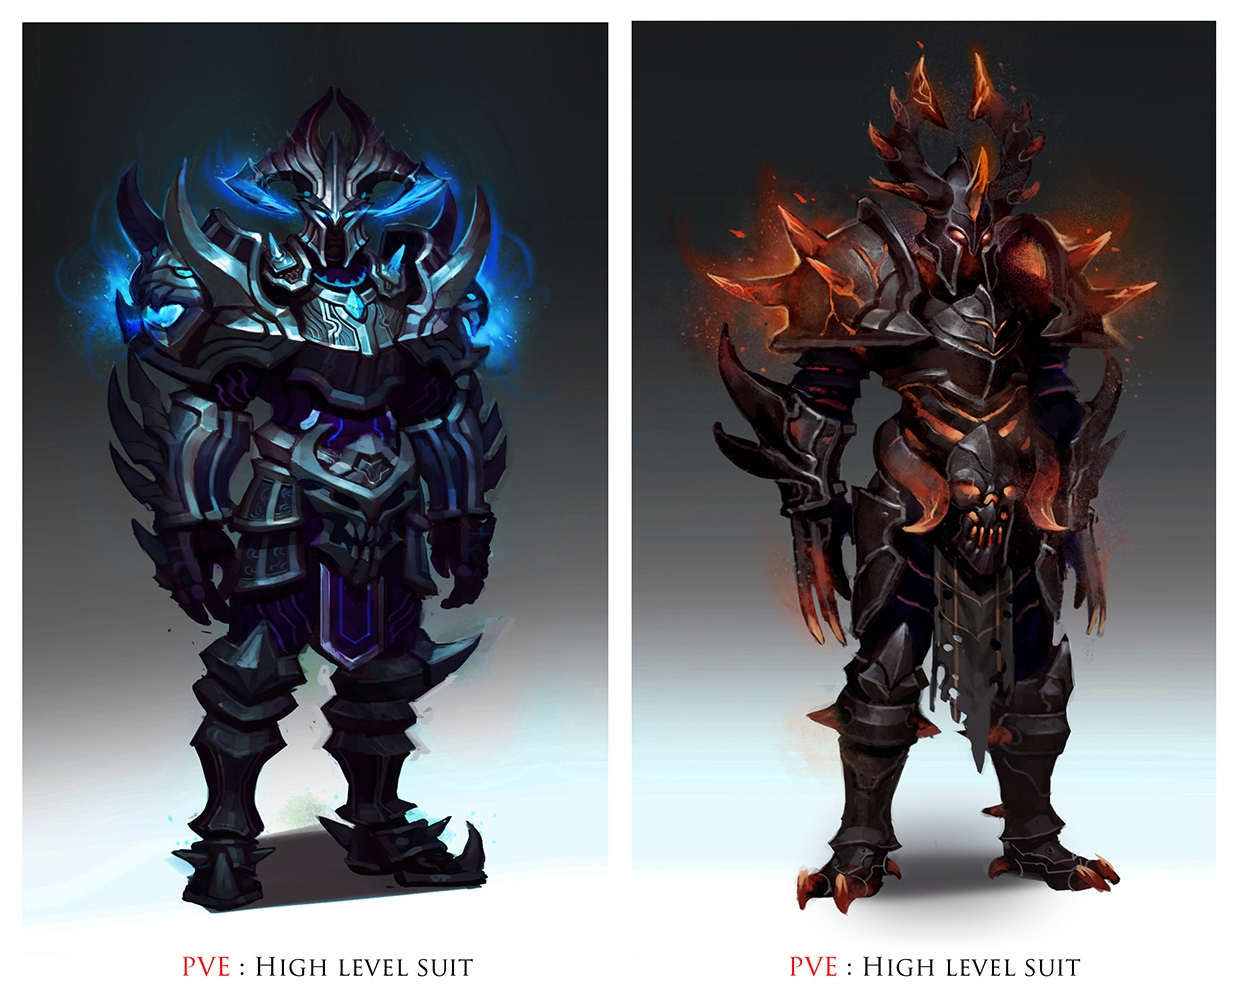 Order & Chaos 2: Redemption Reveals Kratan & Blood Knight concept